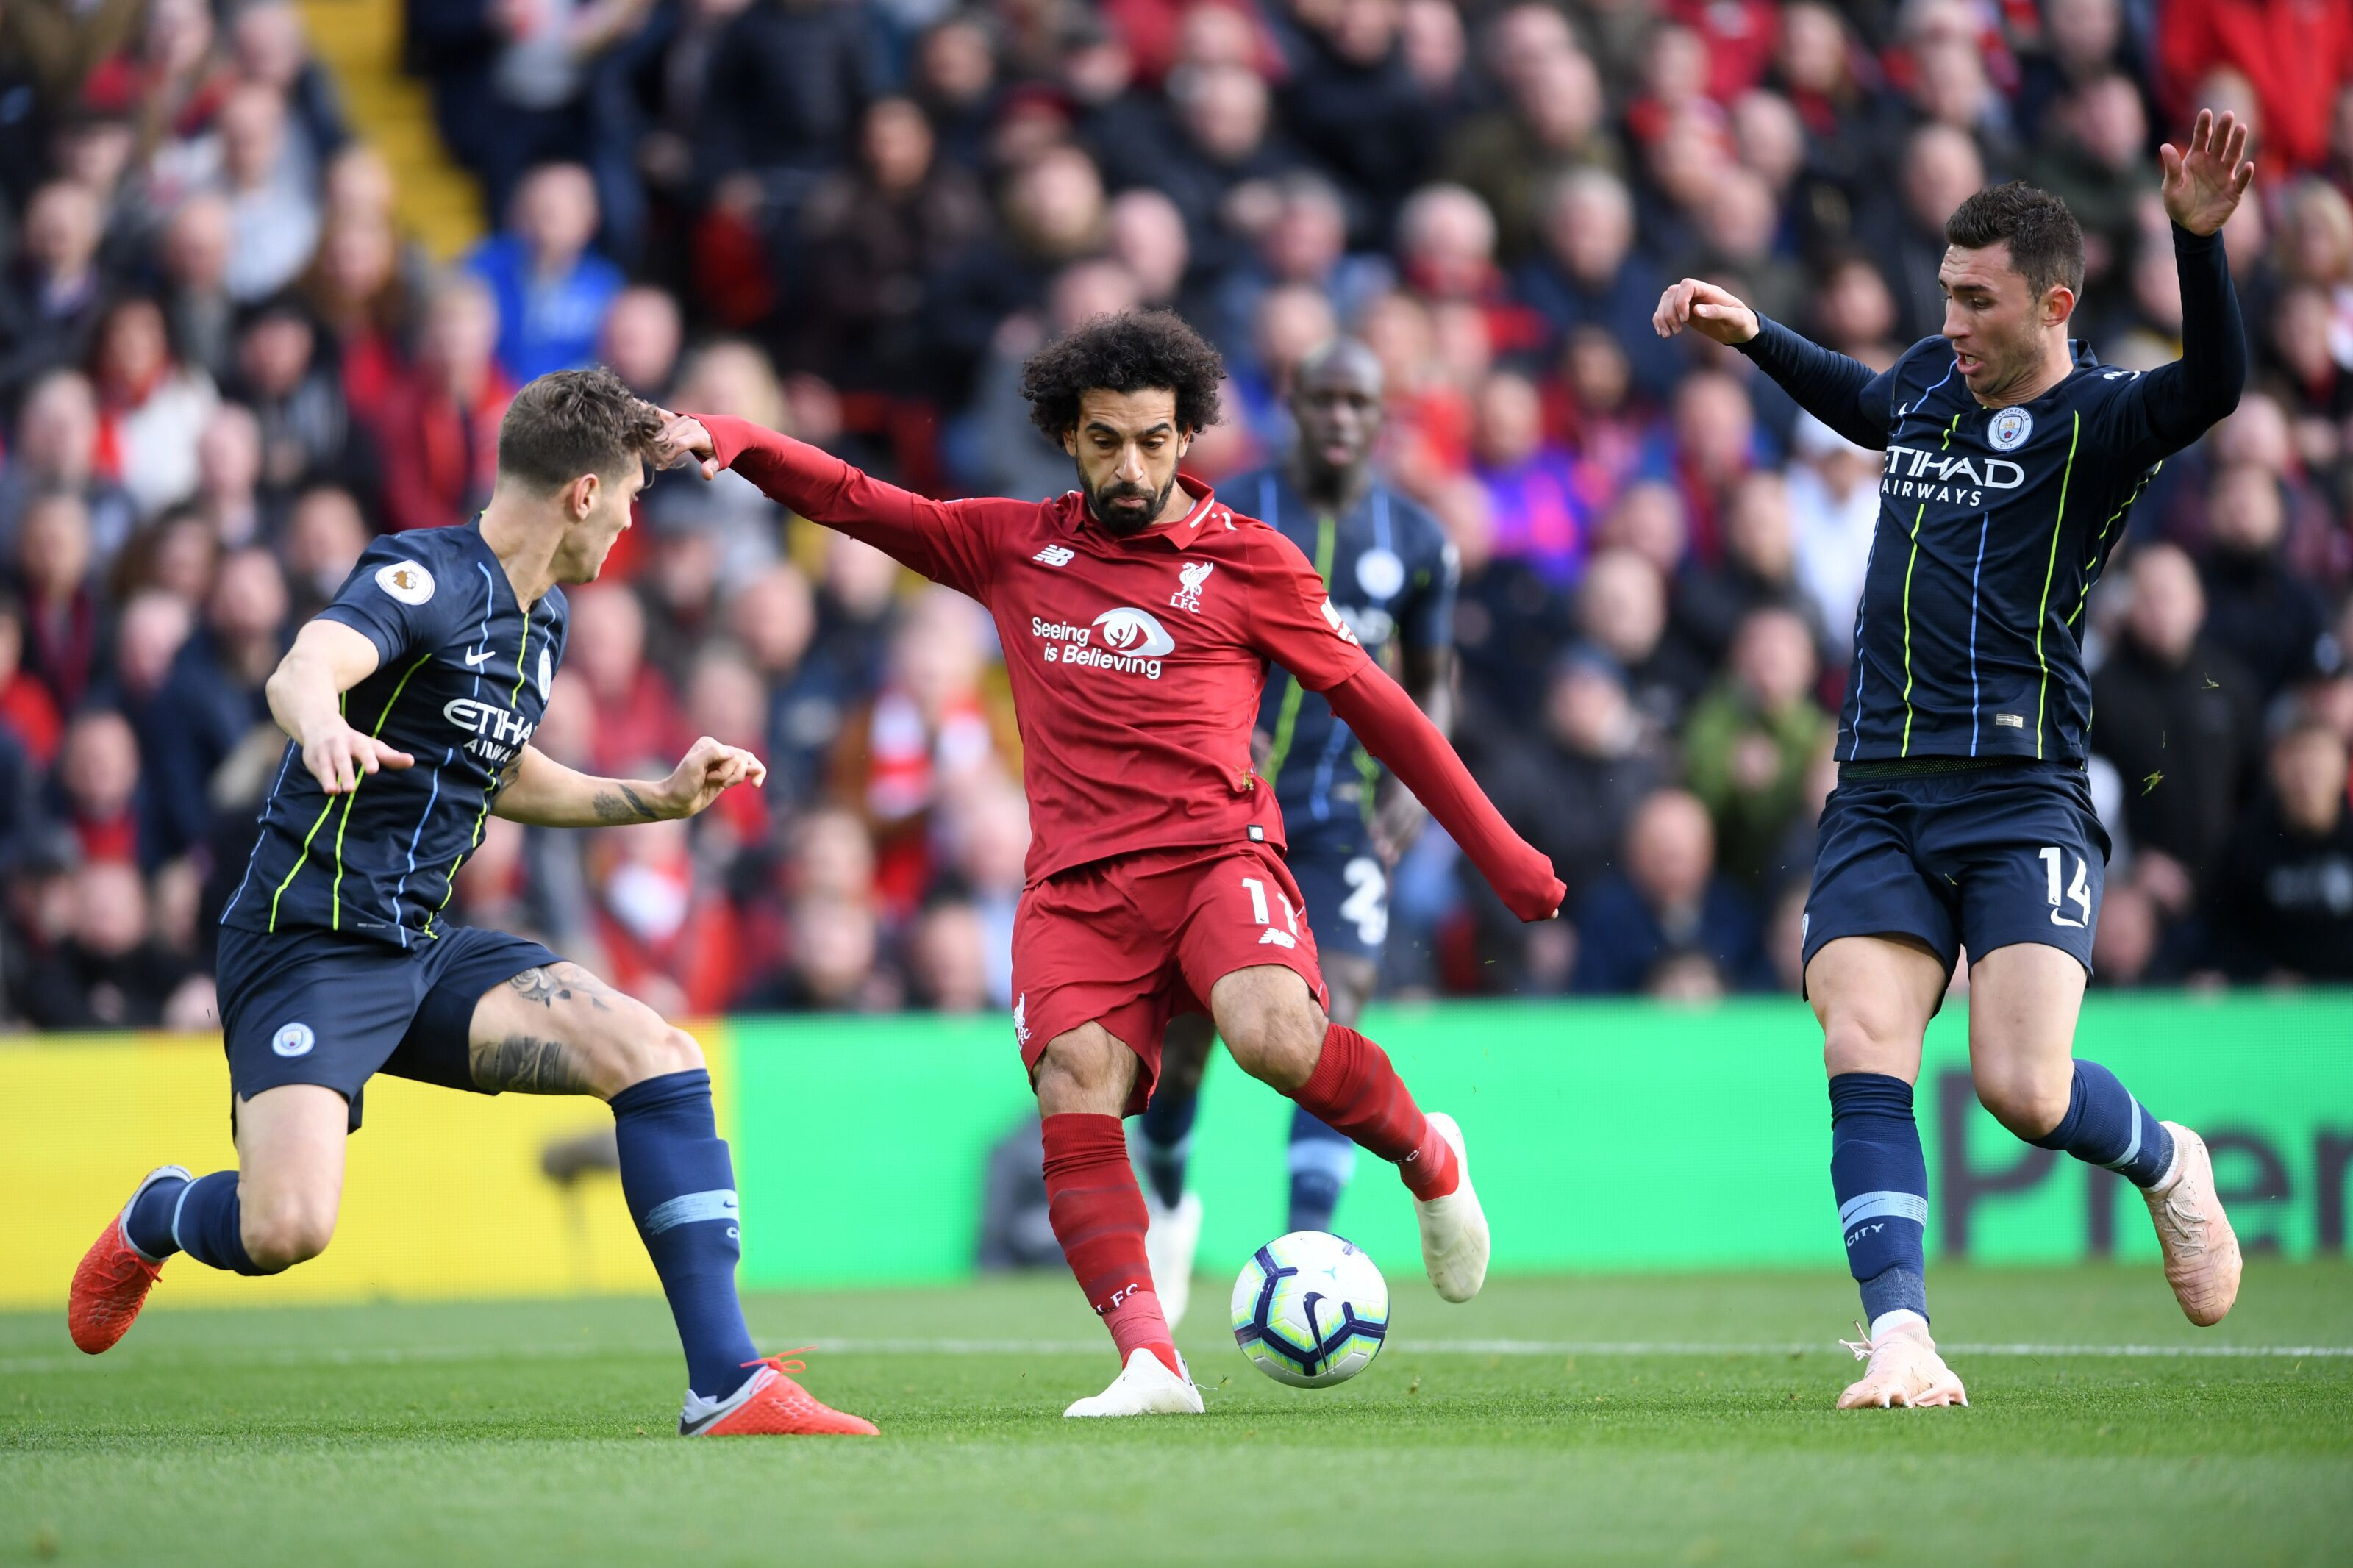 Liverpool Vs Man City: Player Ratings: Liverpool Vs Manchester City